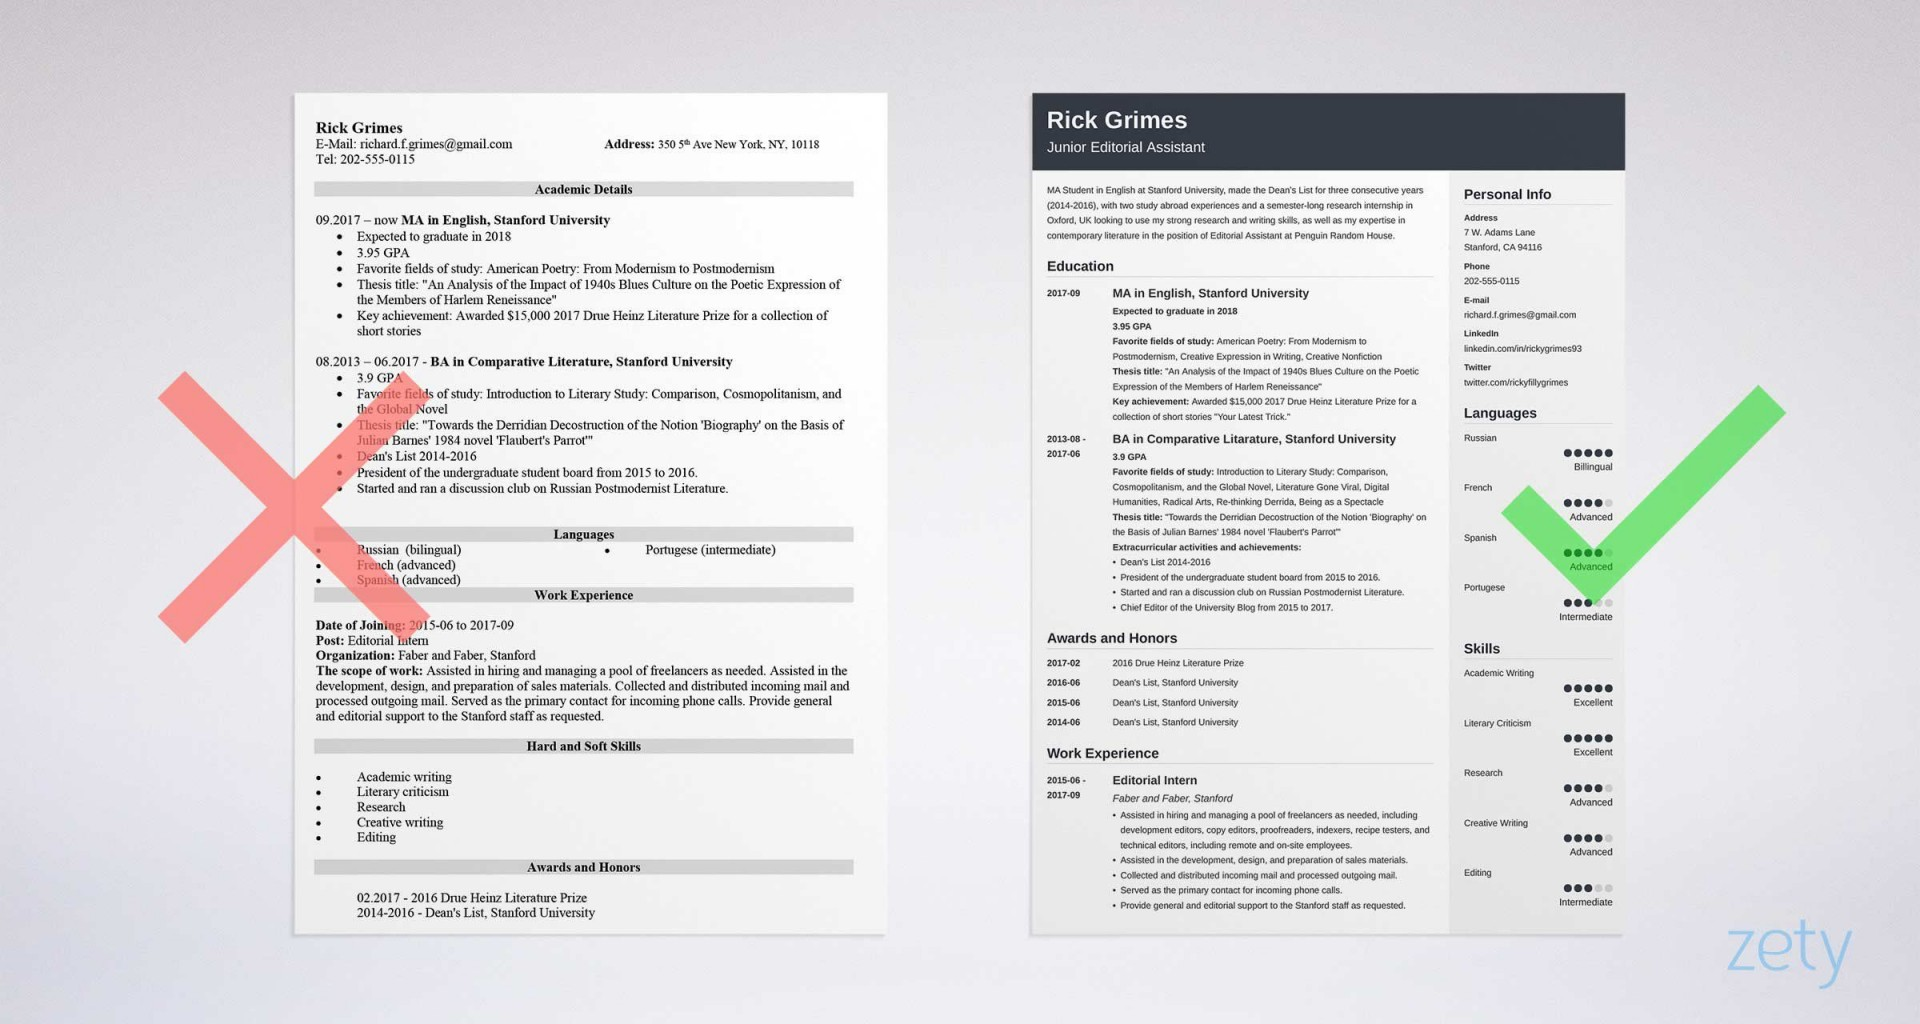 008 Fascinating Resume Template For Student High Def  Students School Internship Google Doc Openoffice Free Download1920